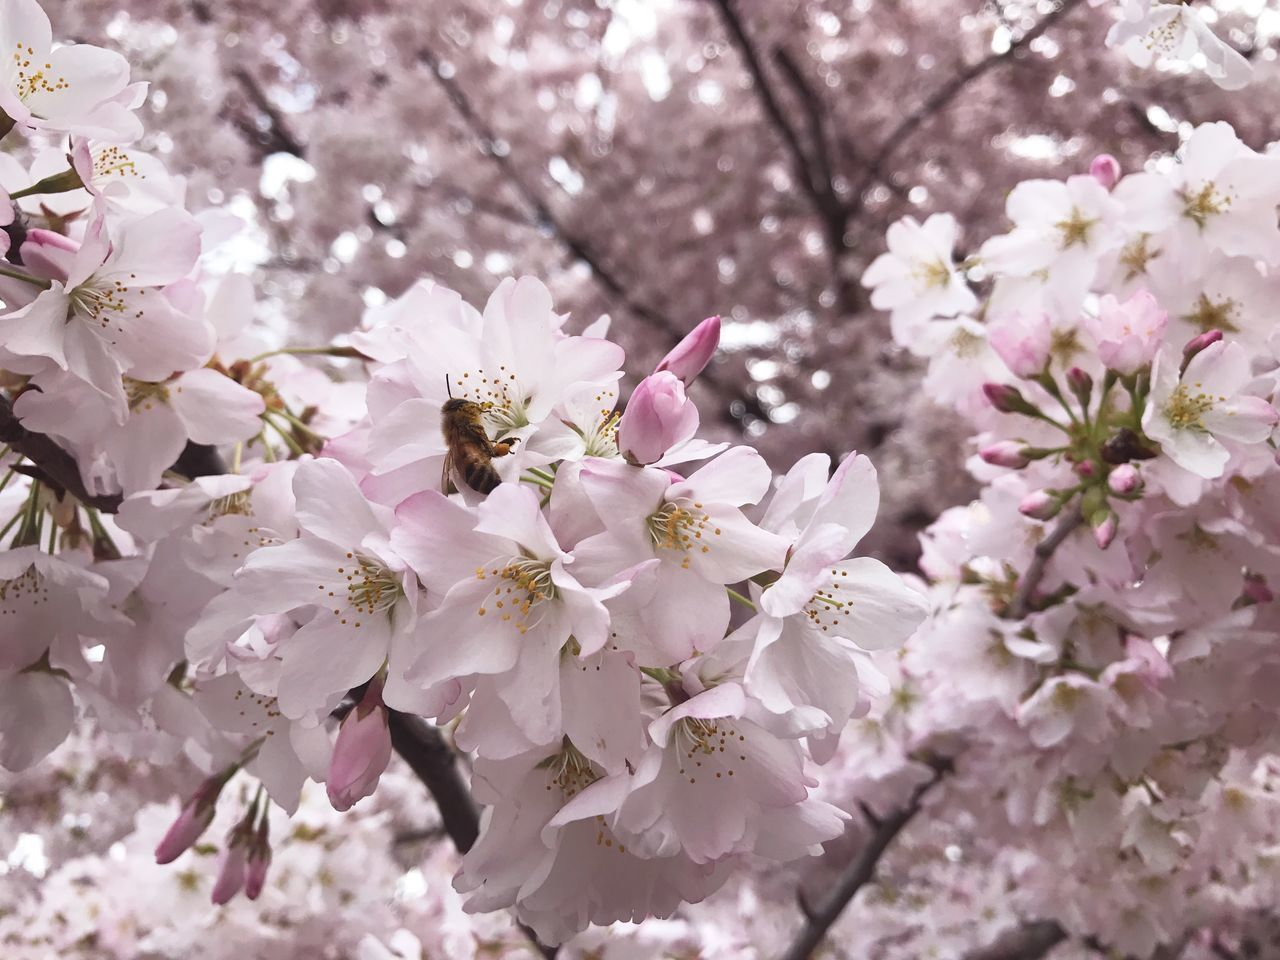 Flower Tree Springtime Blossom Growth Nature Freshness Fragility Beauty In Nature Branch Close-up Petal Bee Pollination Bee Pollinating Ashland, OR Pink Tones Pink Color Cherry Tree Outdoors Beauty In Nature